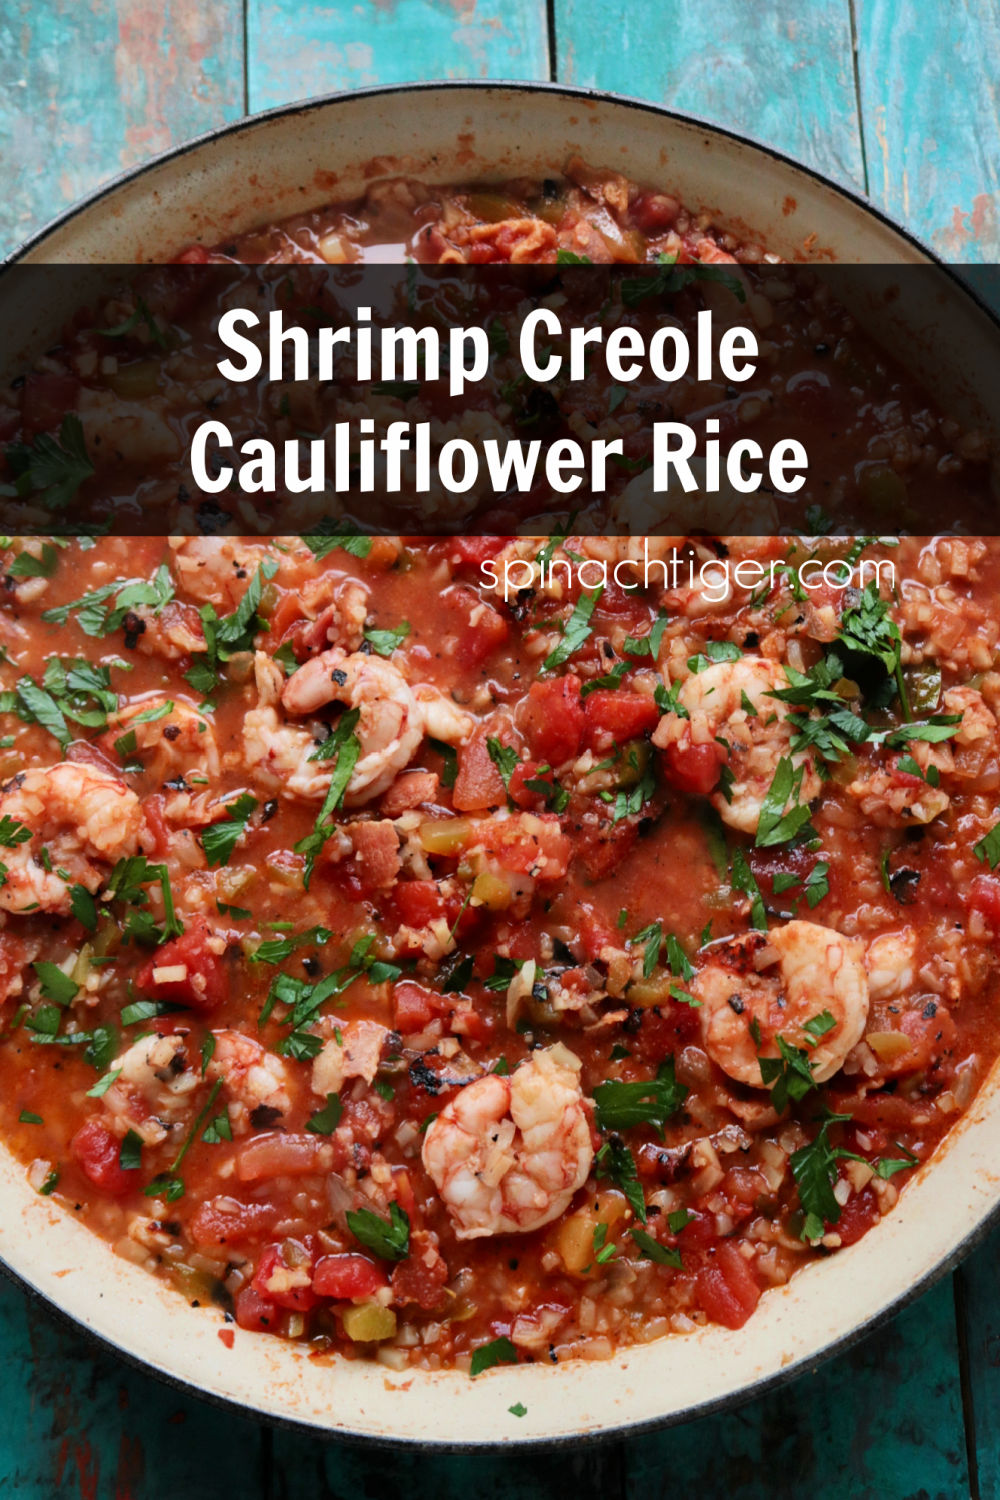 Keto Shrimp Creole with Cauliflower rice, tomatoes, bacon, bell pepper, celery, onion and cajun spices. Easy to make, full of flavor and low in carbs and calories. #ketocajun #ketoshrimpideas #ketocajunides #shrimp #ketoshrimpcreoloe via @angelaroberts